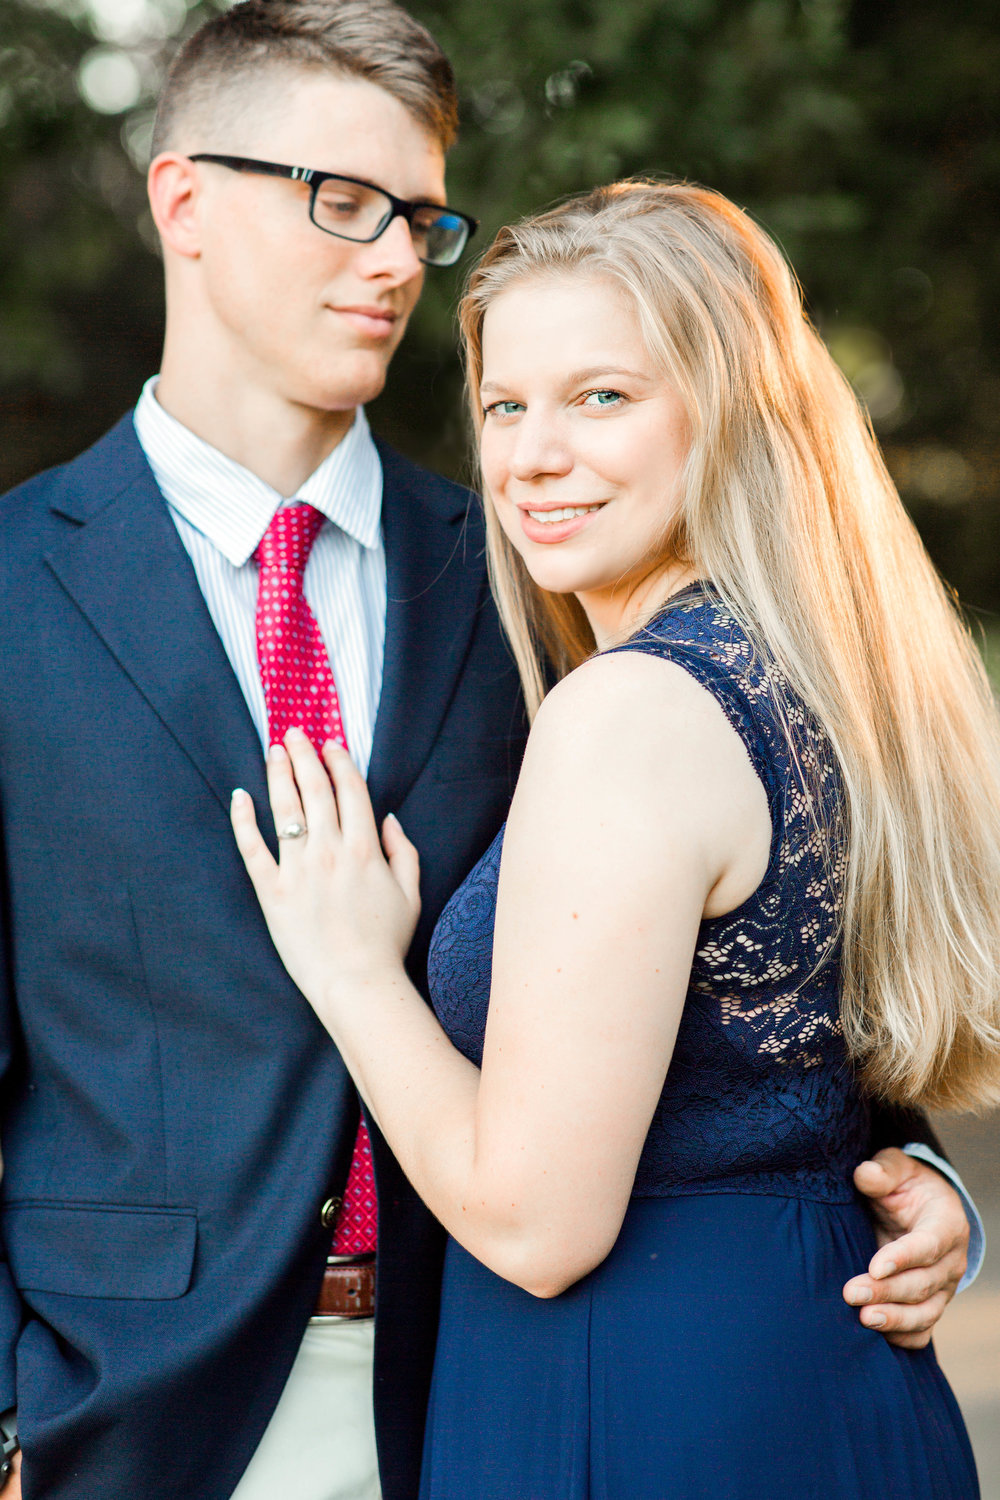 MaryElizabeth_Will_Engagement-99.JPG